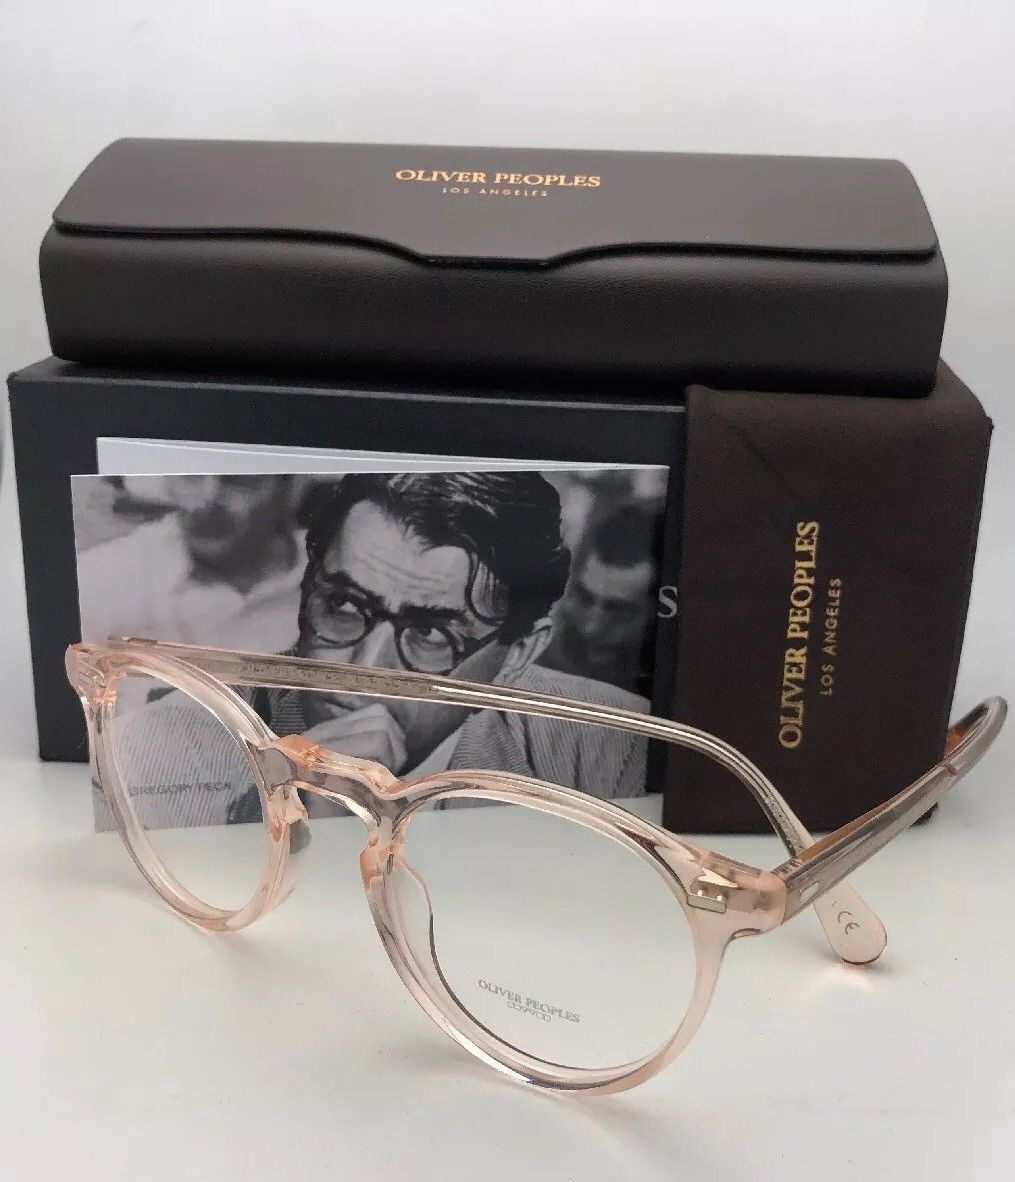 d35fb22f50d New Oliver Peoples Eyeglasses Gregory Peck and 32 similar items. 57